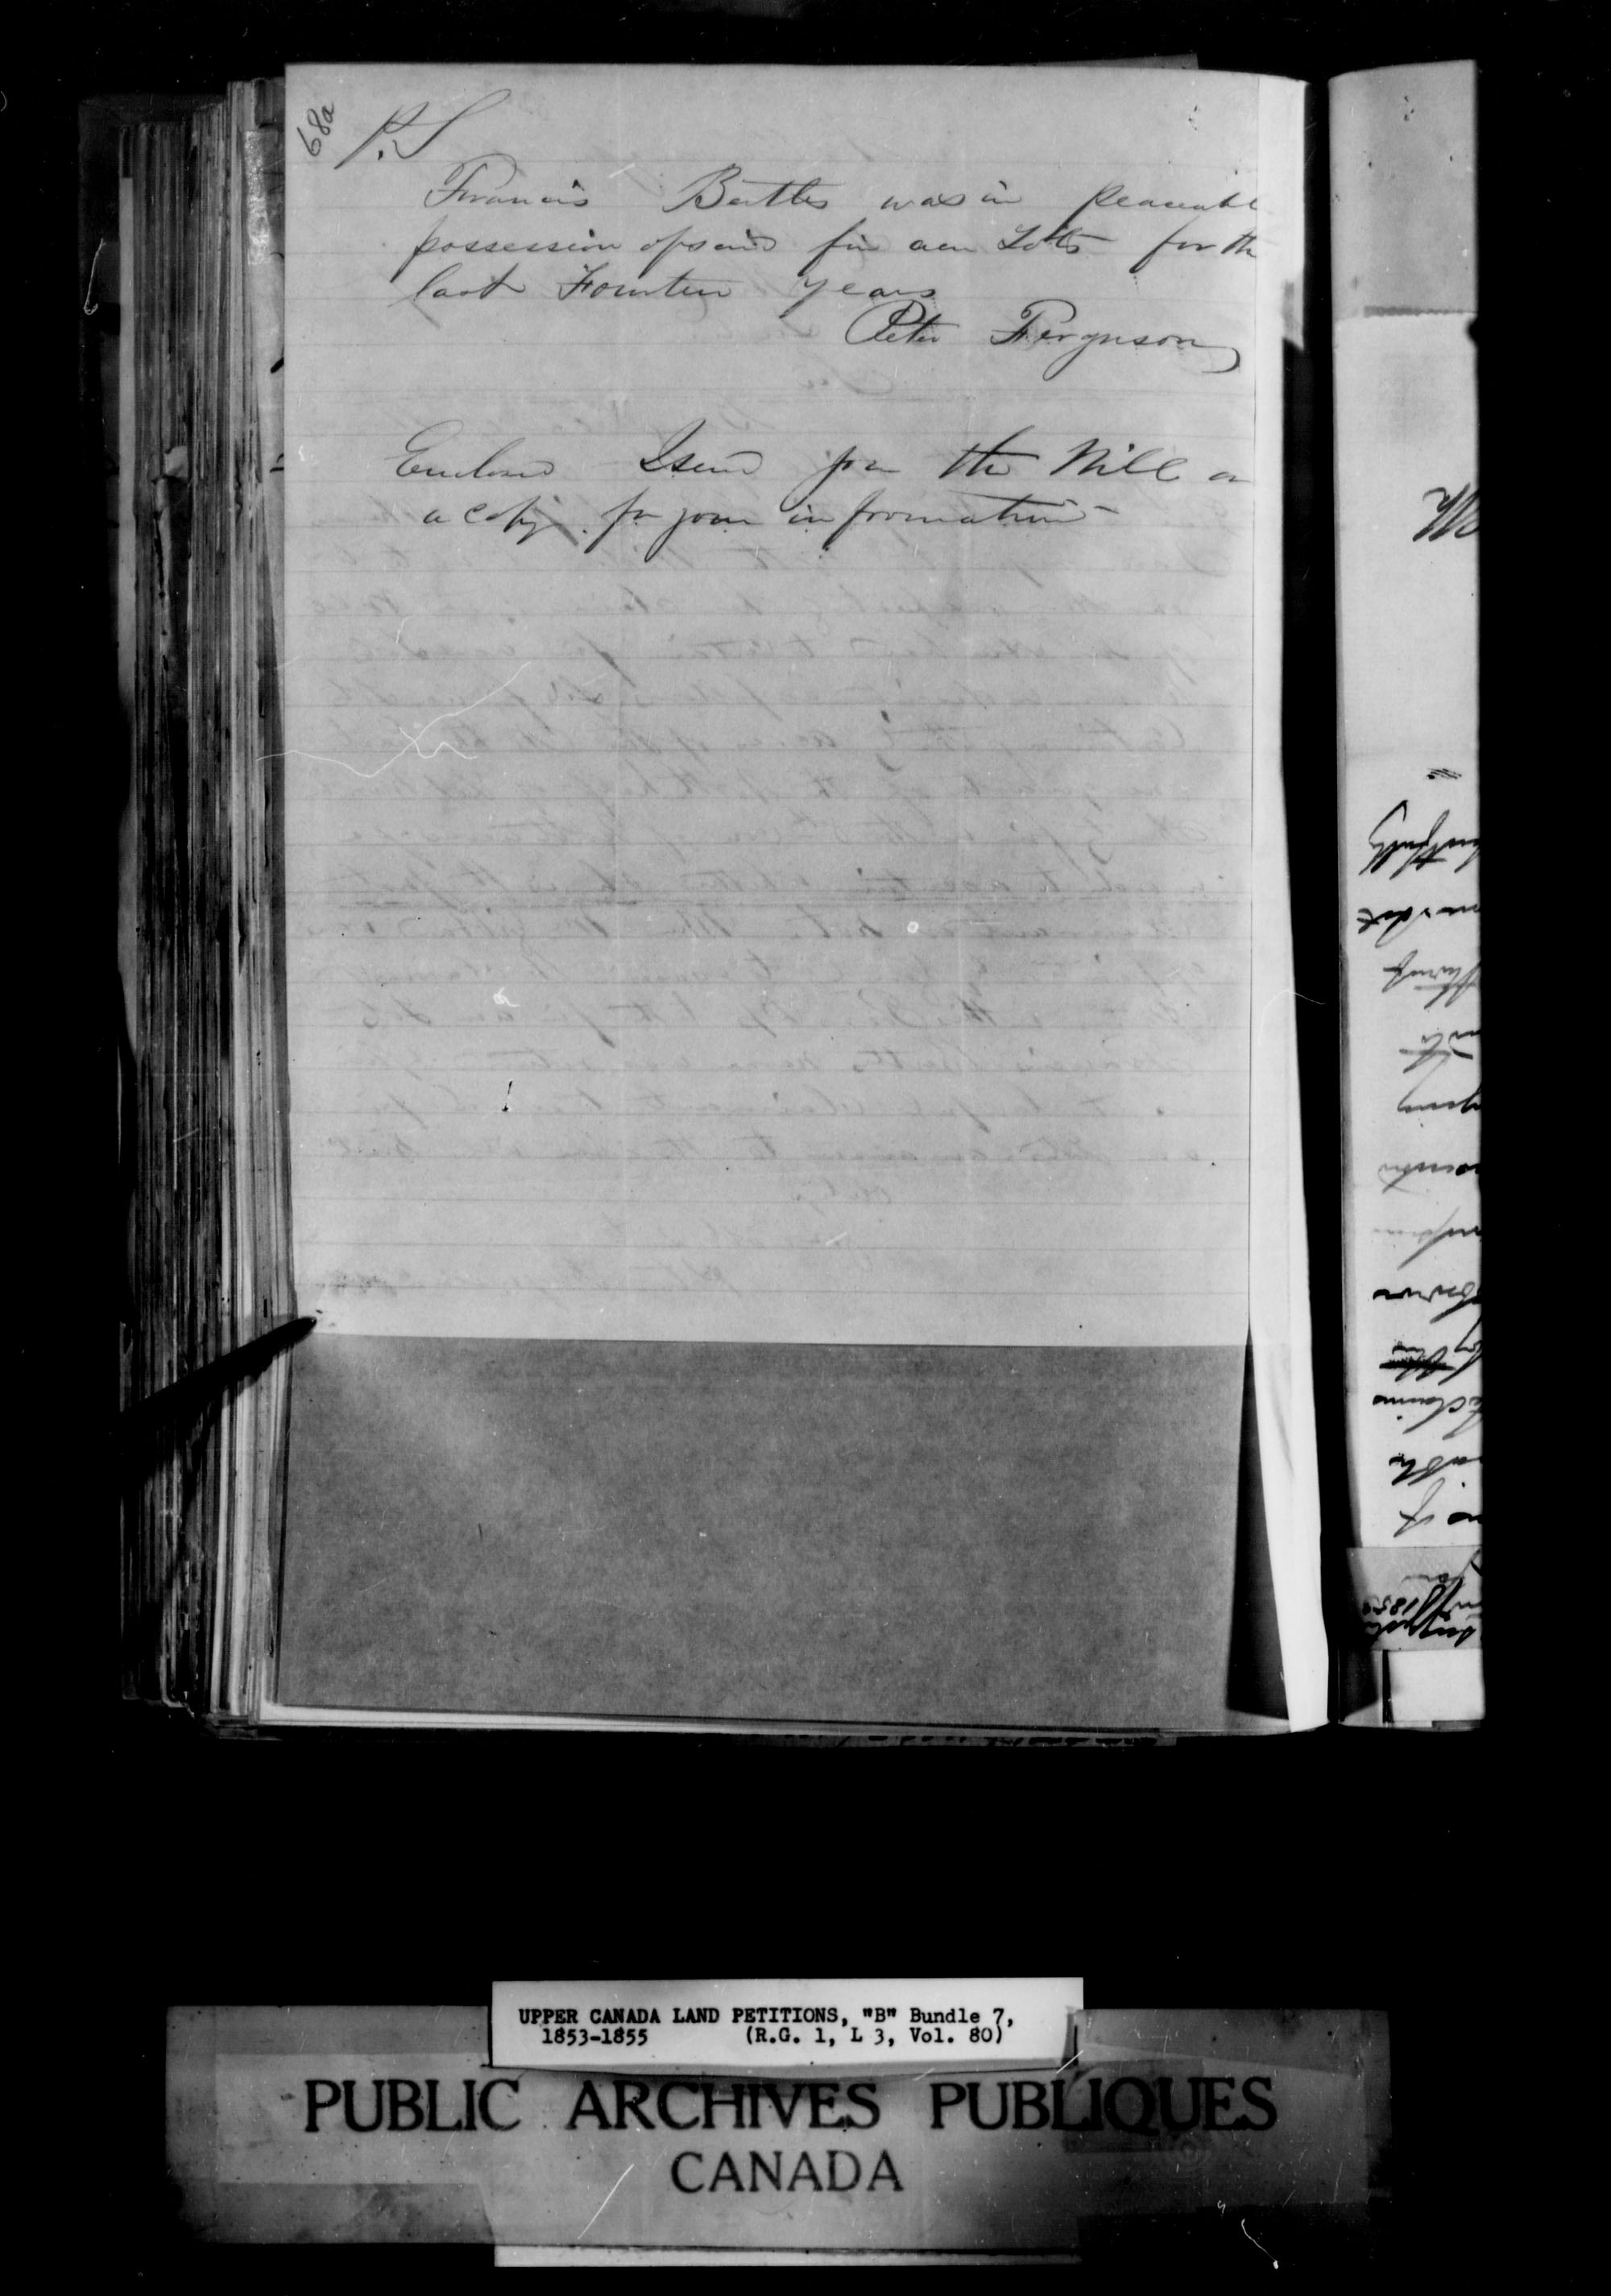 Title: Upper Canada Land Petitions (1763-1865) - Mikan Number: 205131 - Microform: c-1643